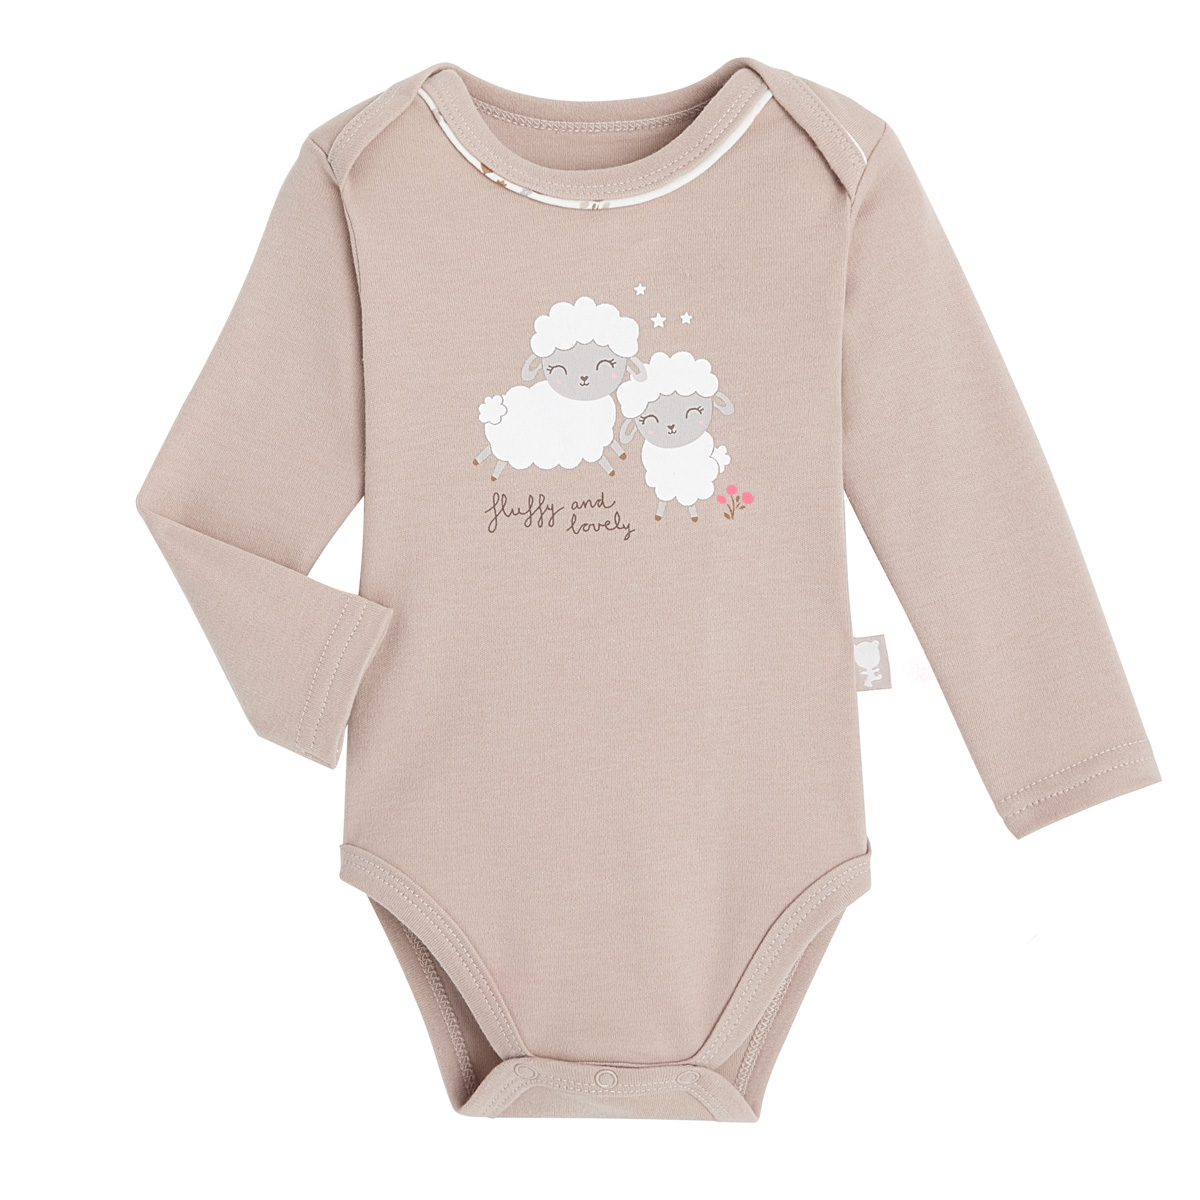 Lot de 2 bodies bébé fille manches longues Lovely Baby 1